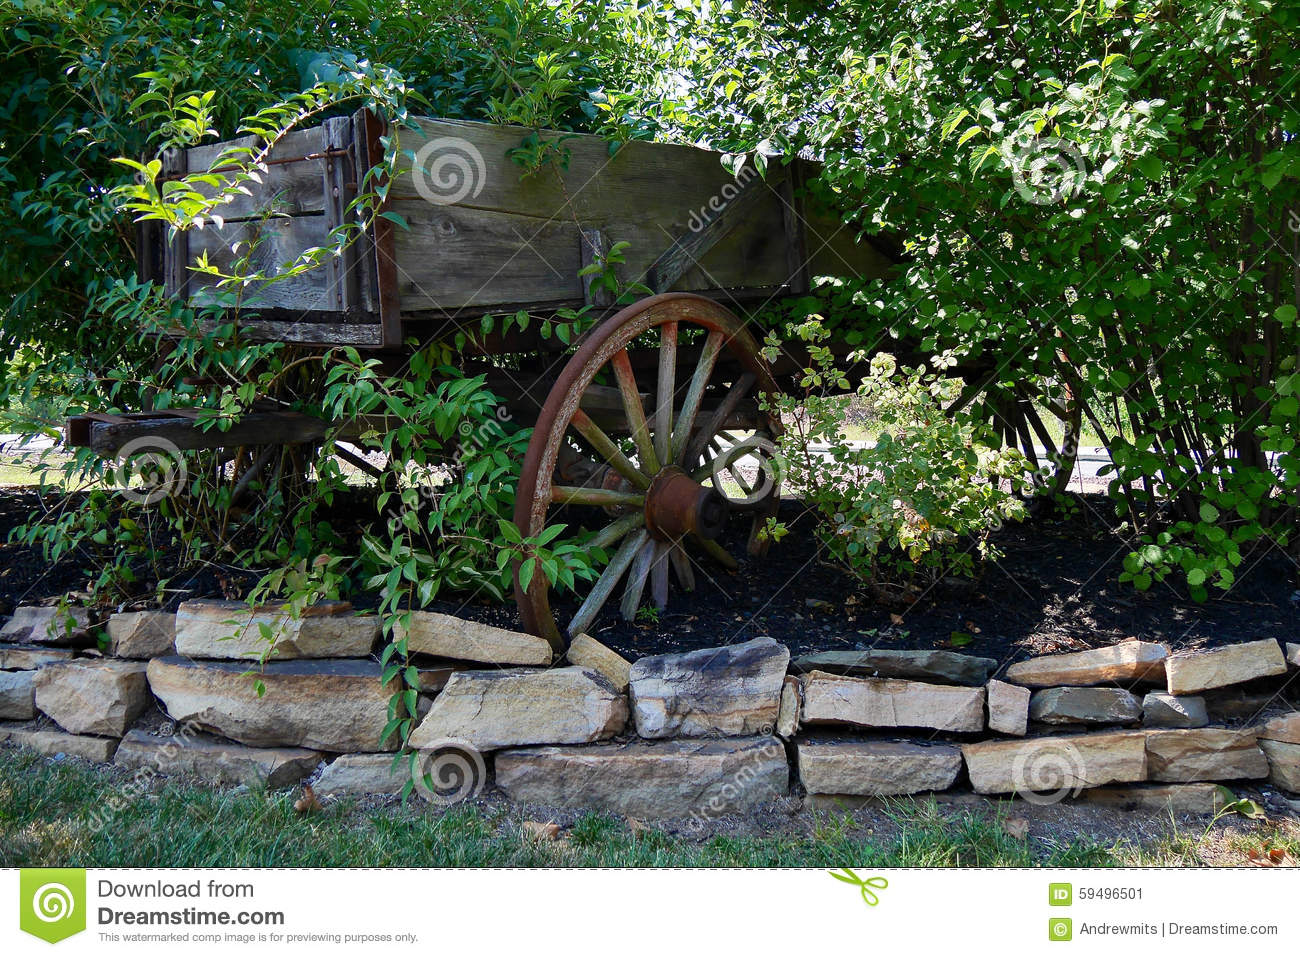 Decorative Garden Cart And Stone Border Stock Photo - Image: 59496501